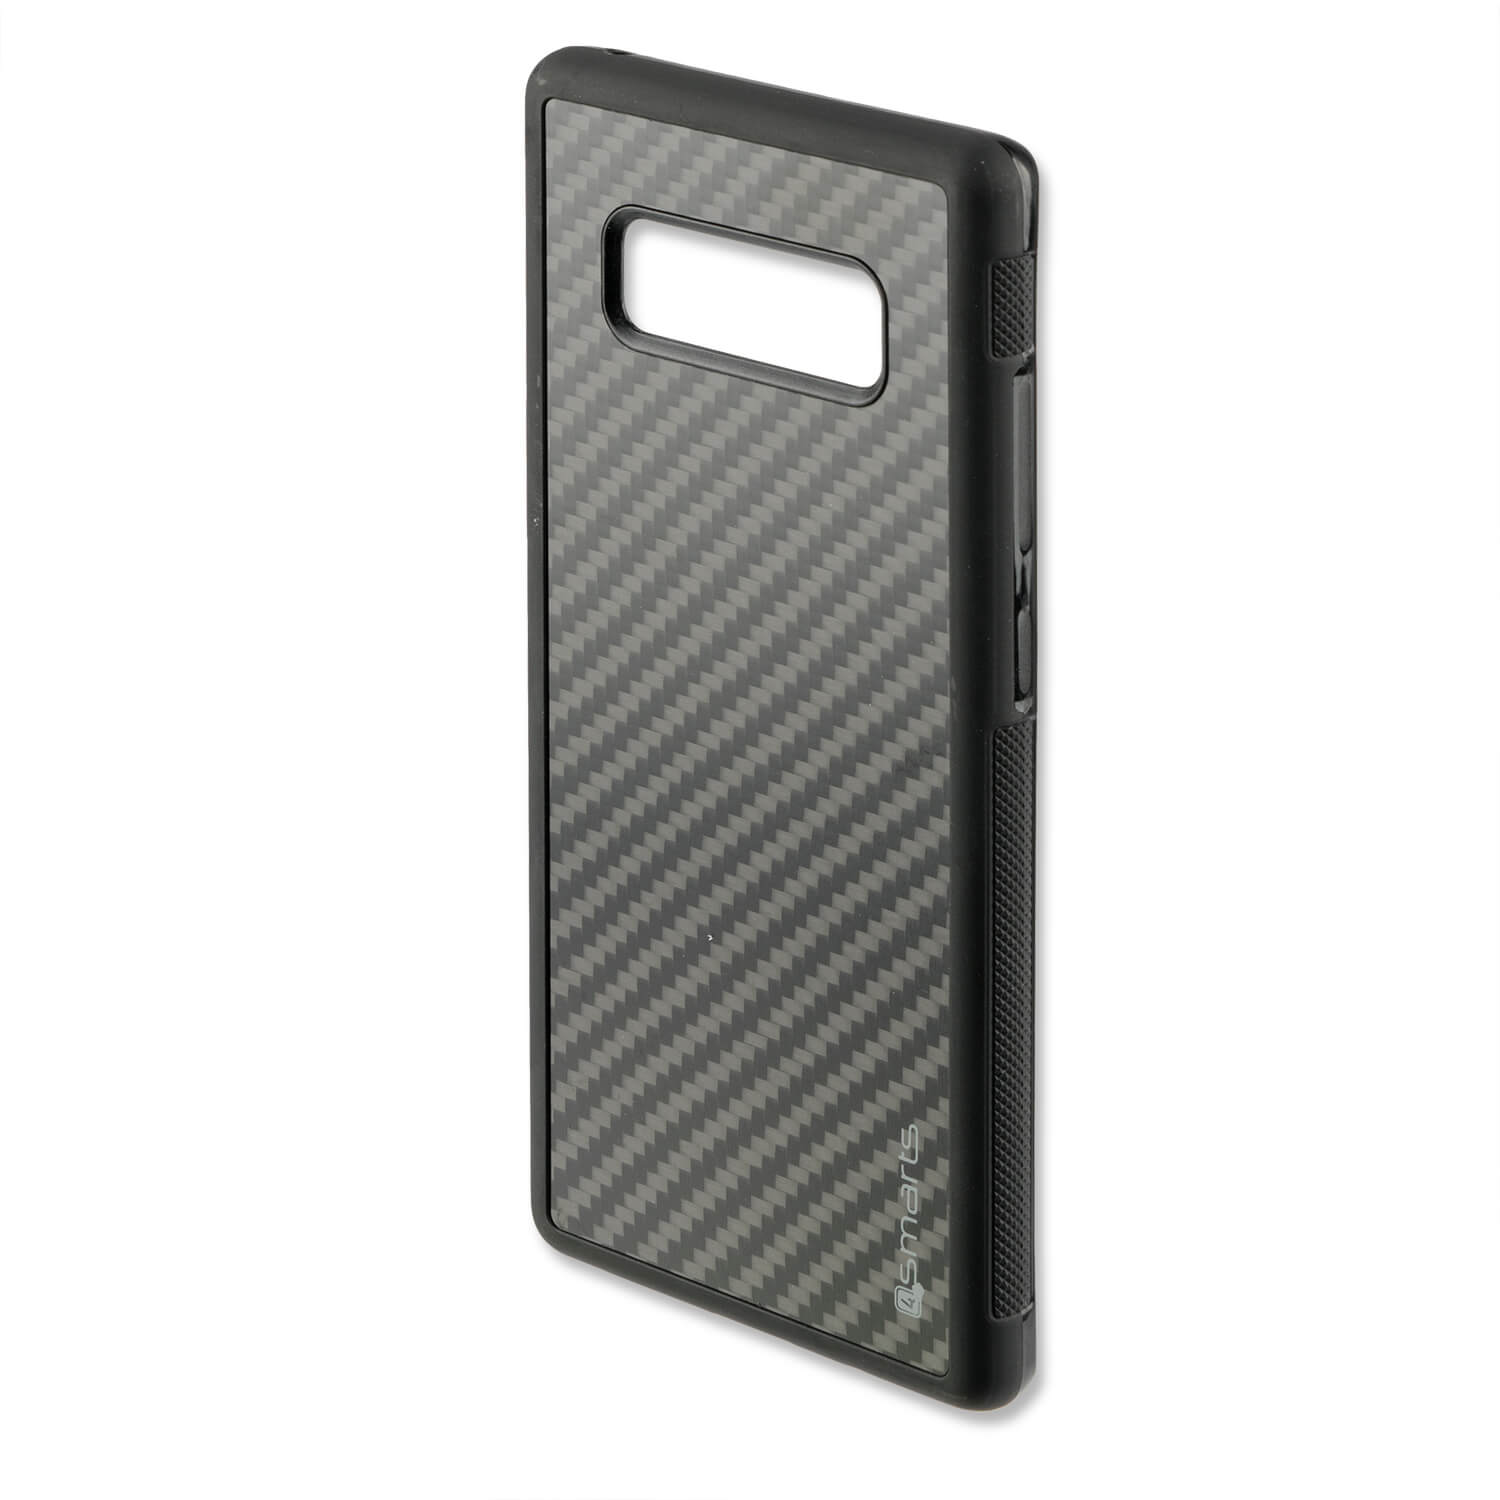 4smarts Clip-On Cover Trendline Carbon - удароустойчив карбонов кейс за Samsung Galaxy Note 8 (карбон)